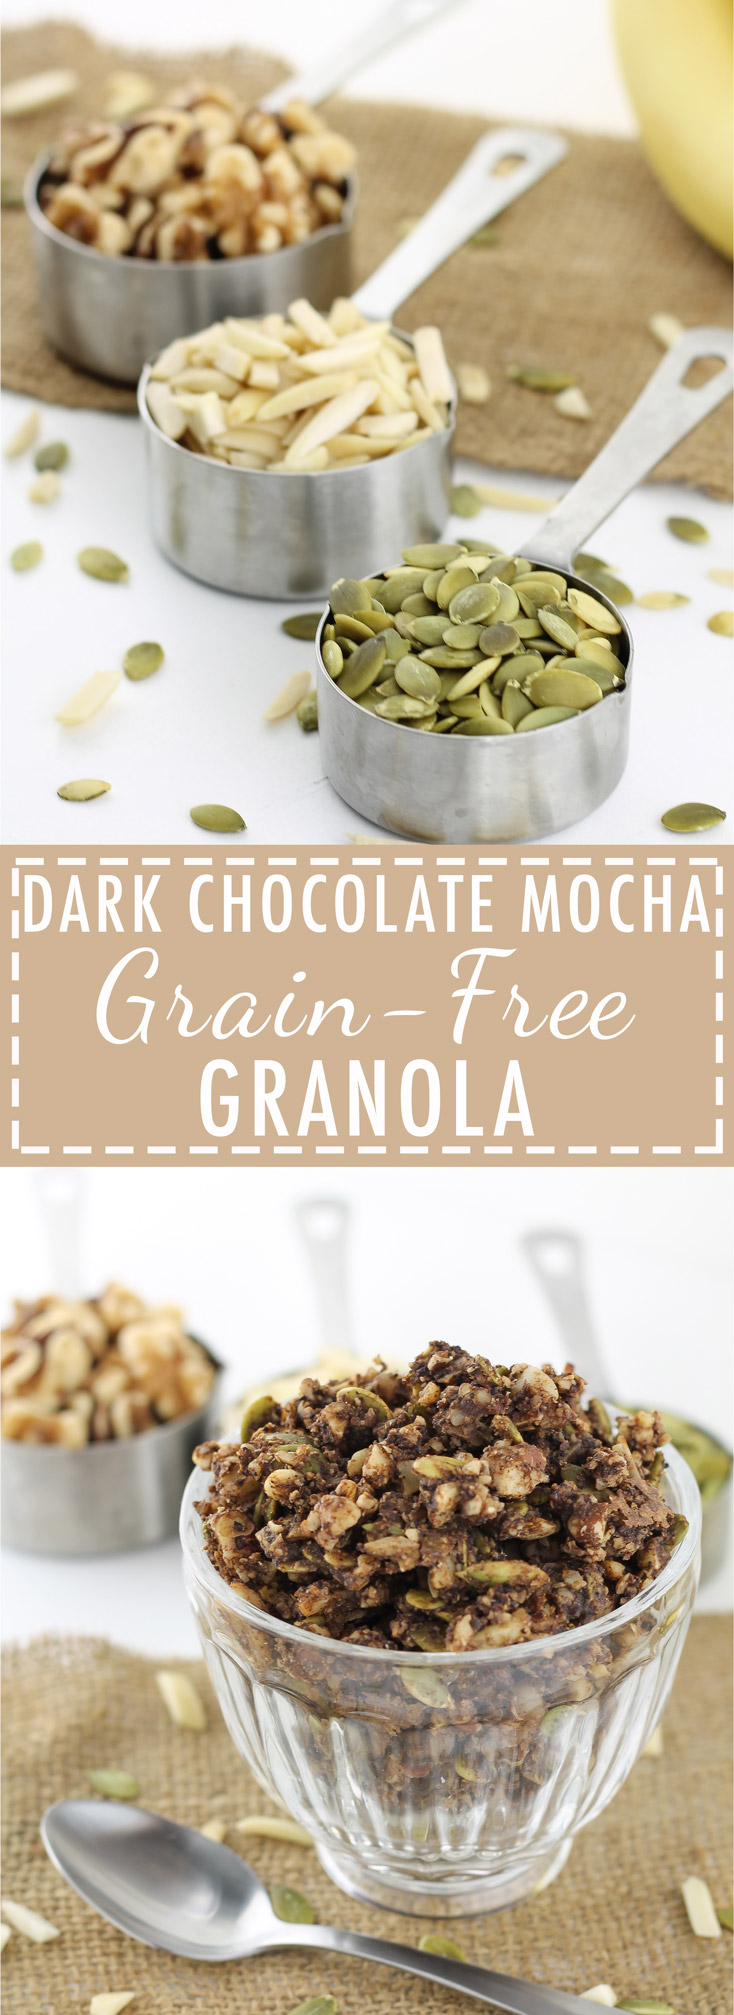 Dark Chocolate, Grain Free Granola, Paleo Granola, Mocha, Gluten Free, Paleo Recipes, Homemade, Cereal